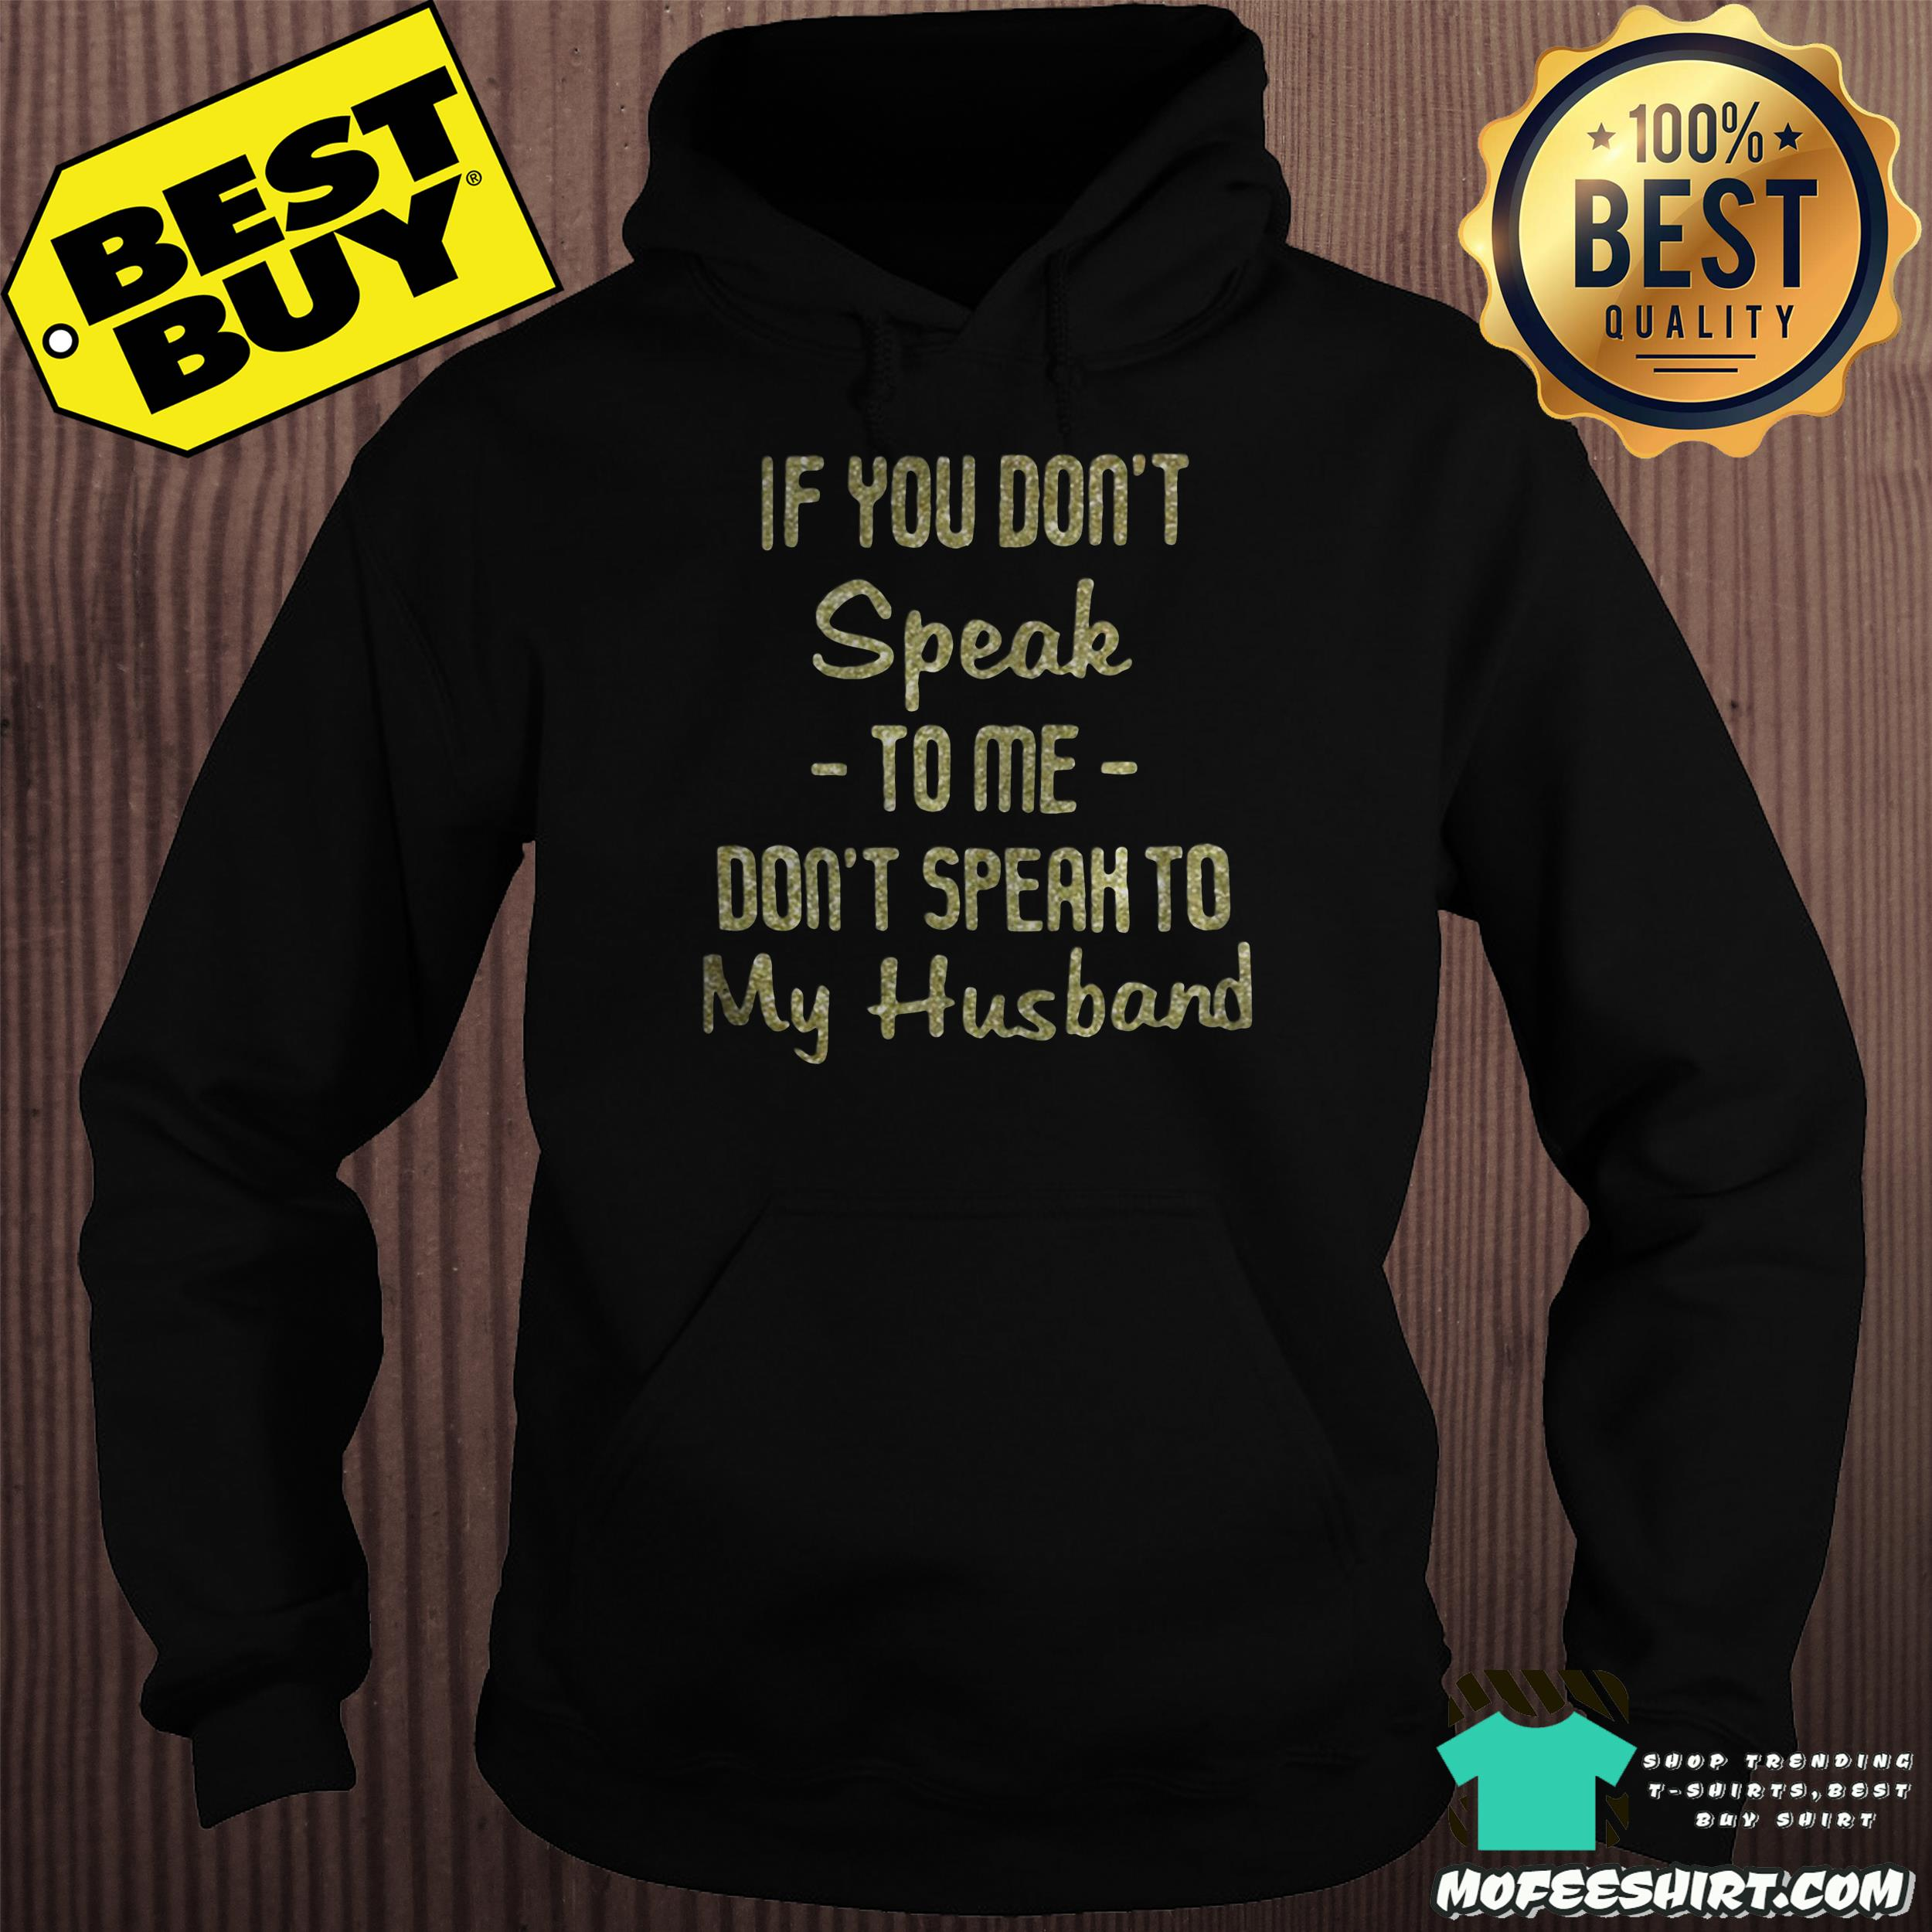 if you dont speak to me dont speak to my husband hoodie - If you don't speak to me don't speak to my husband shirt